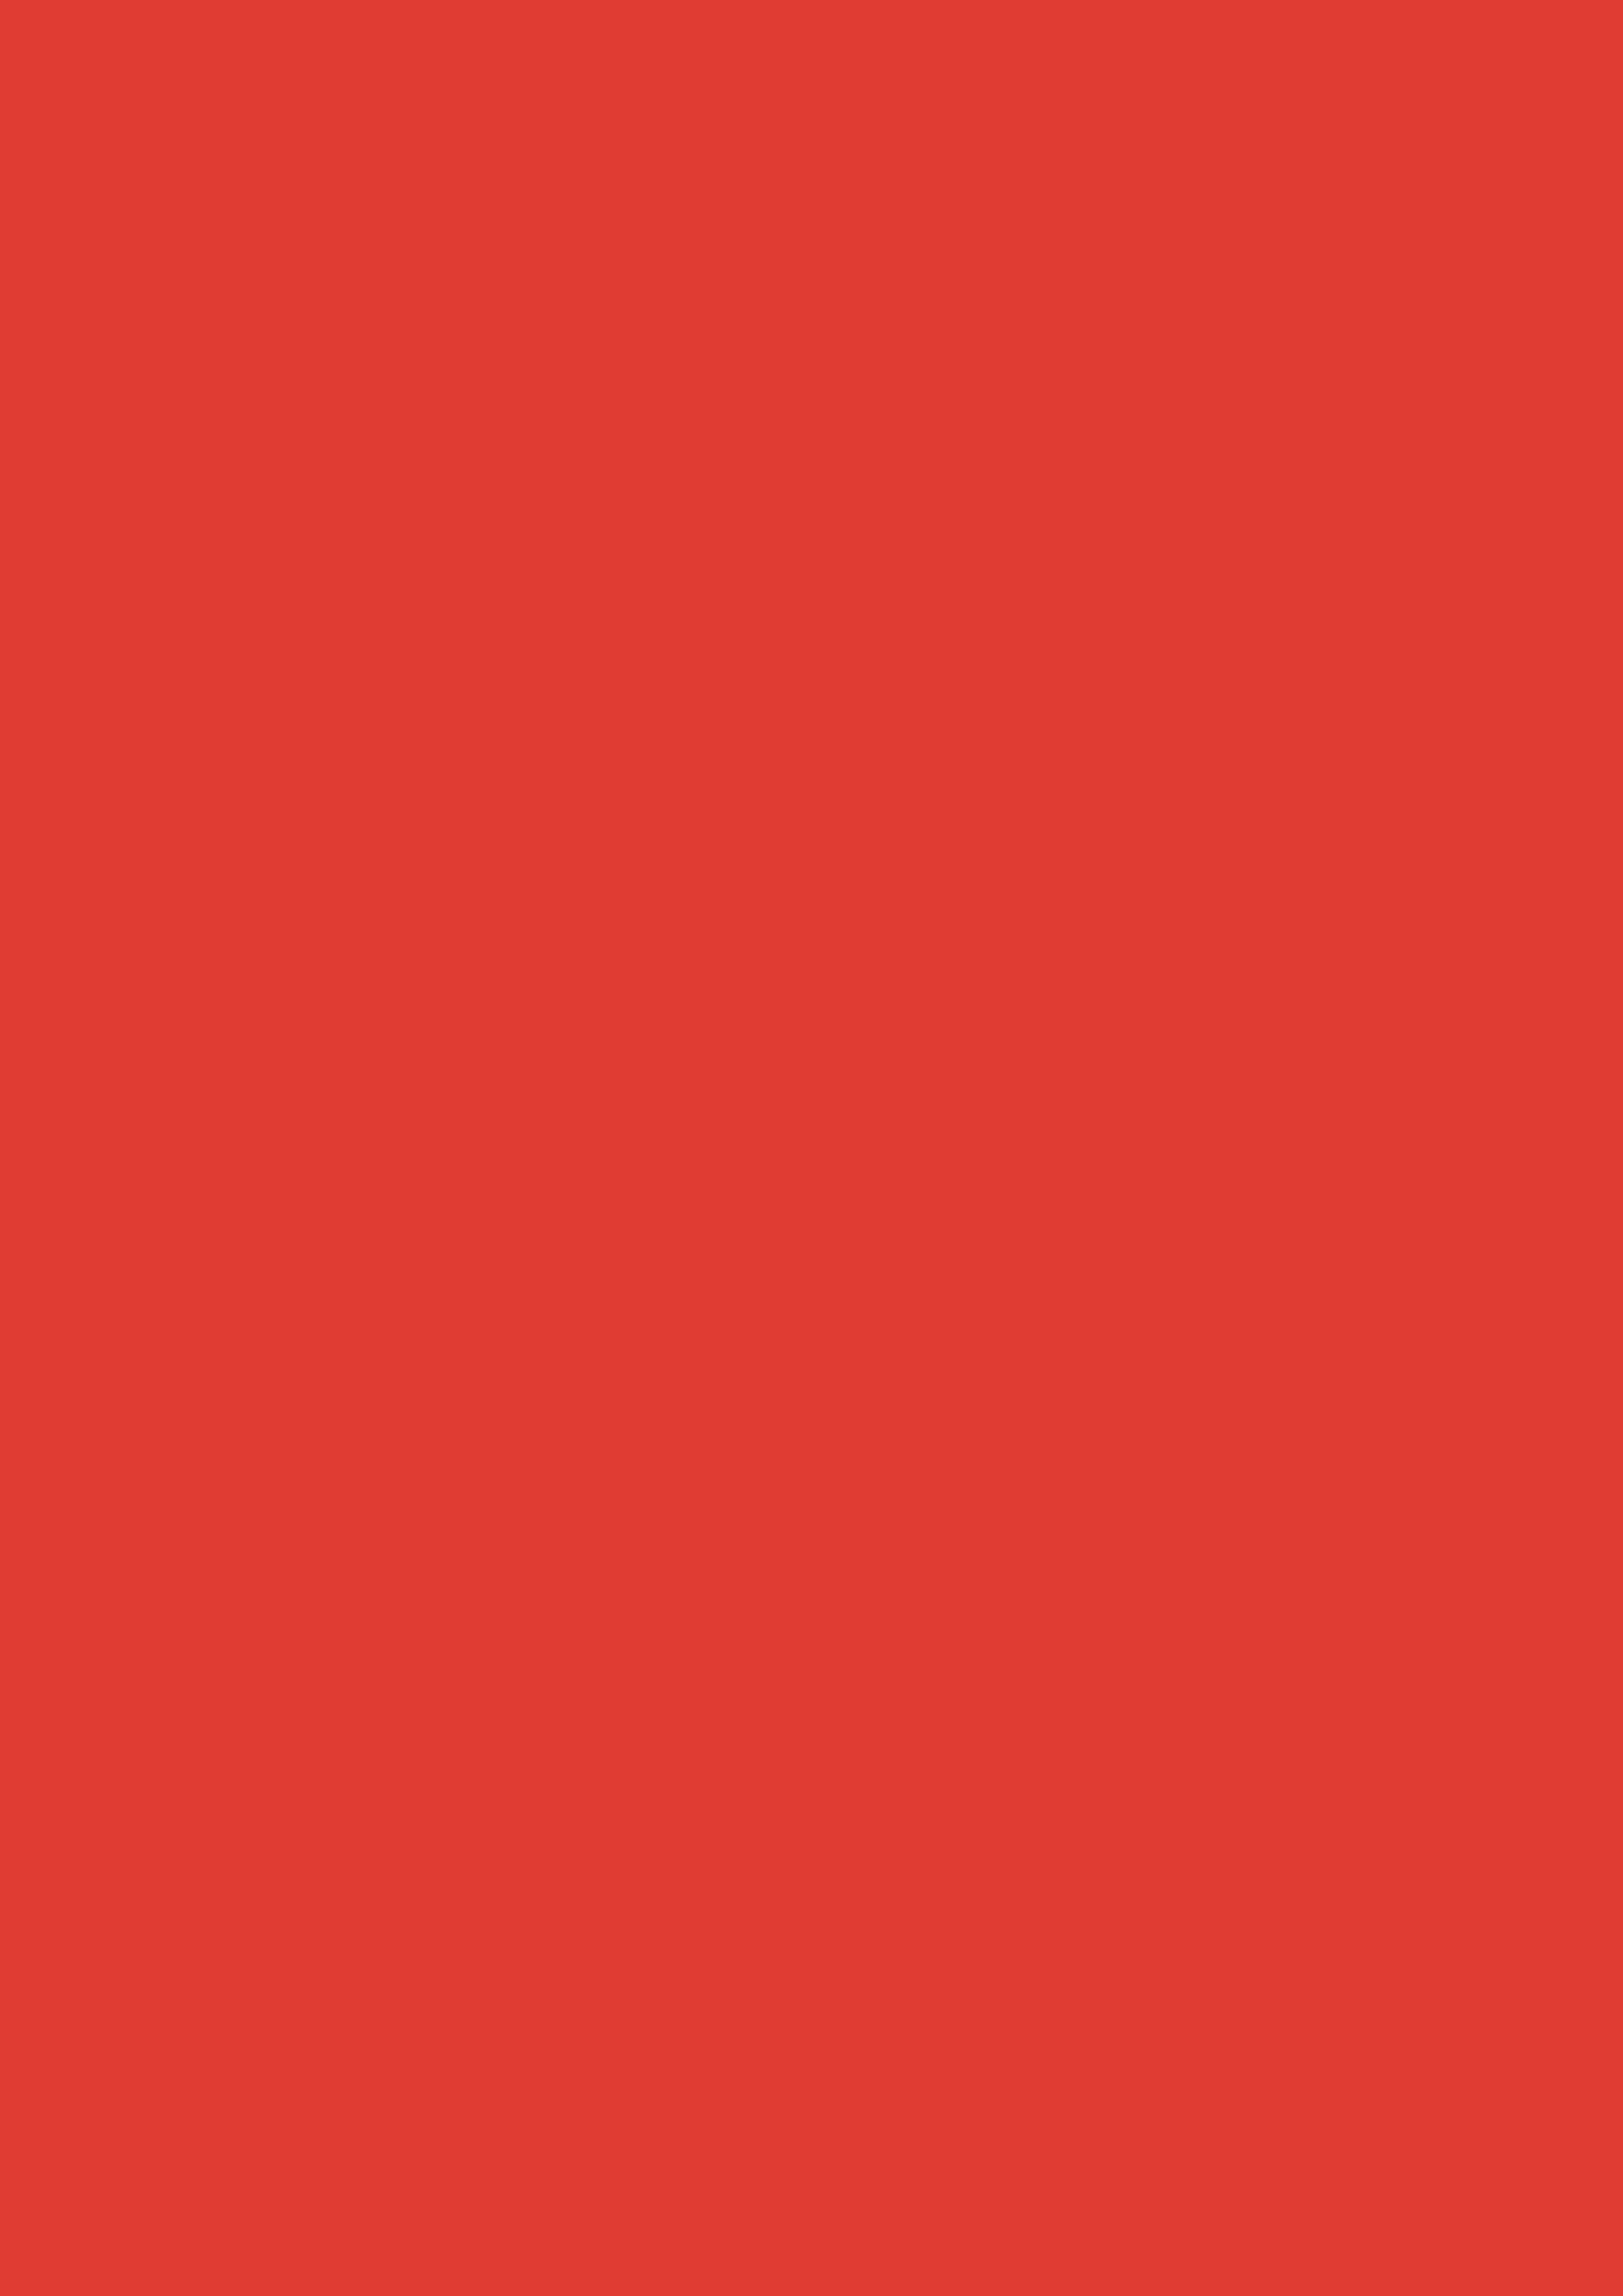 2480x3508 CG Red Solid Color Background